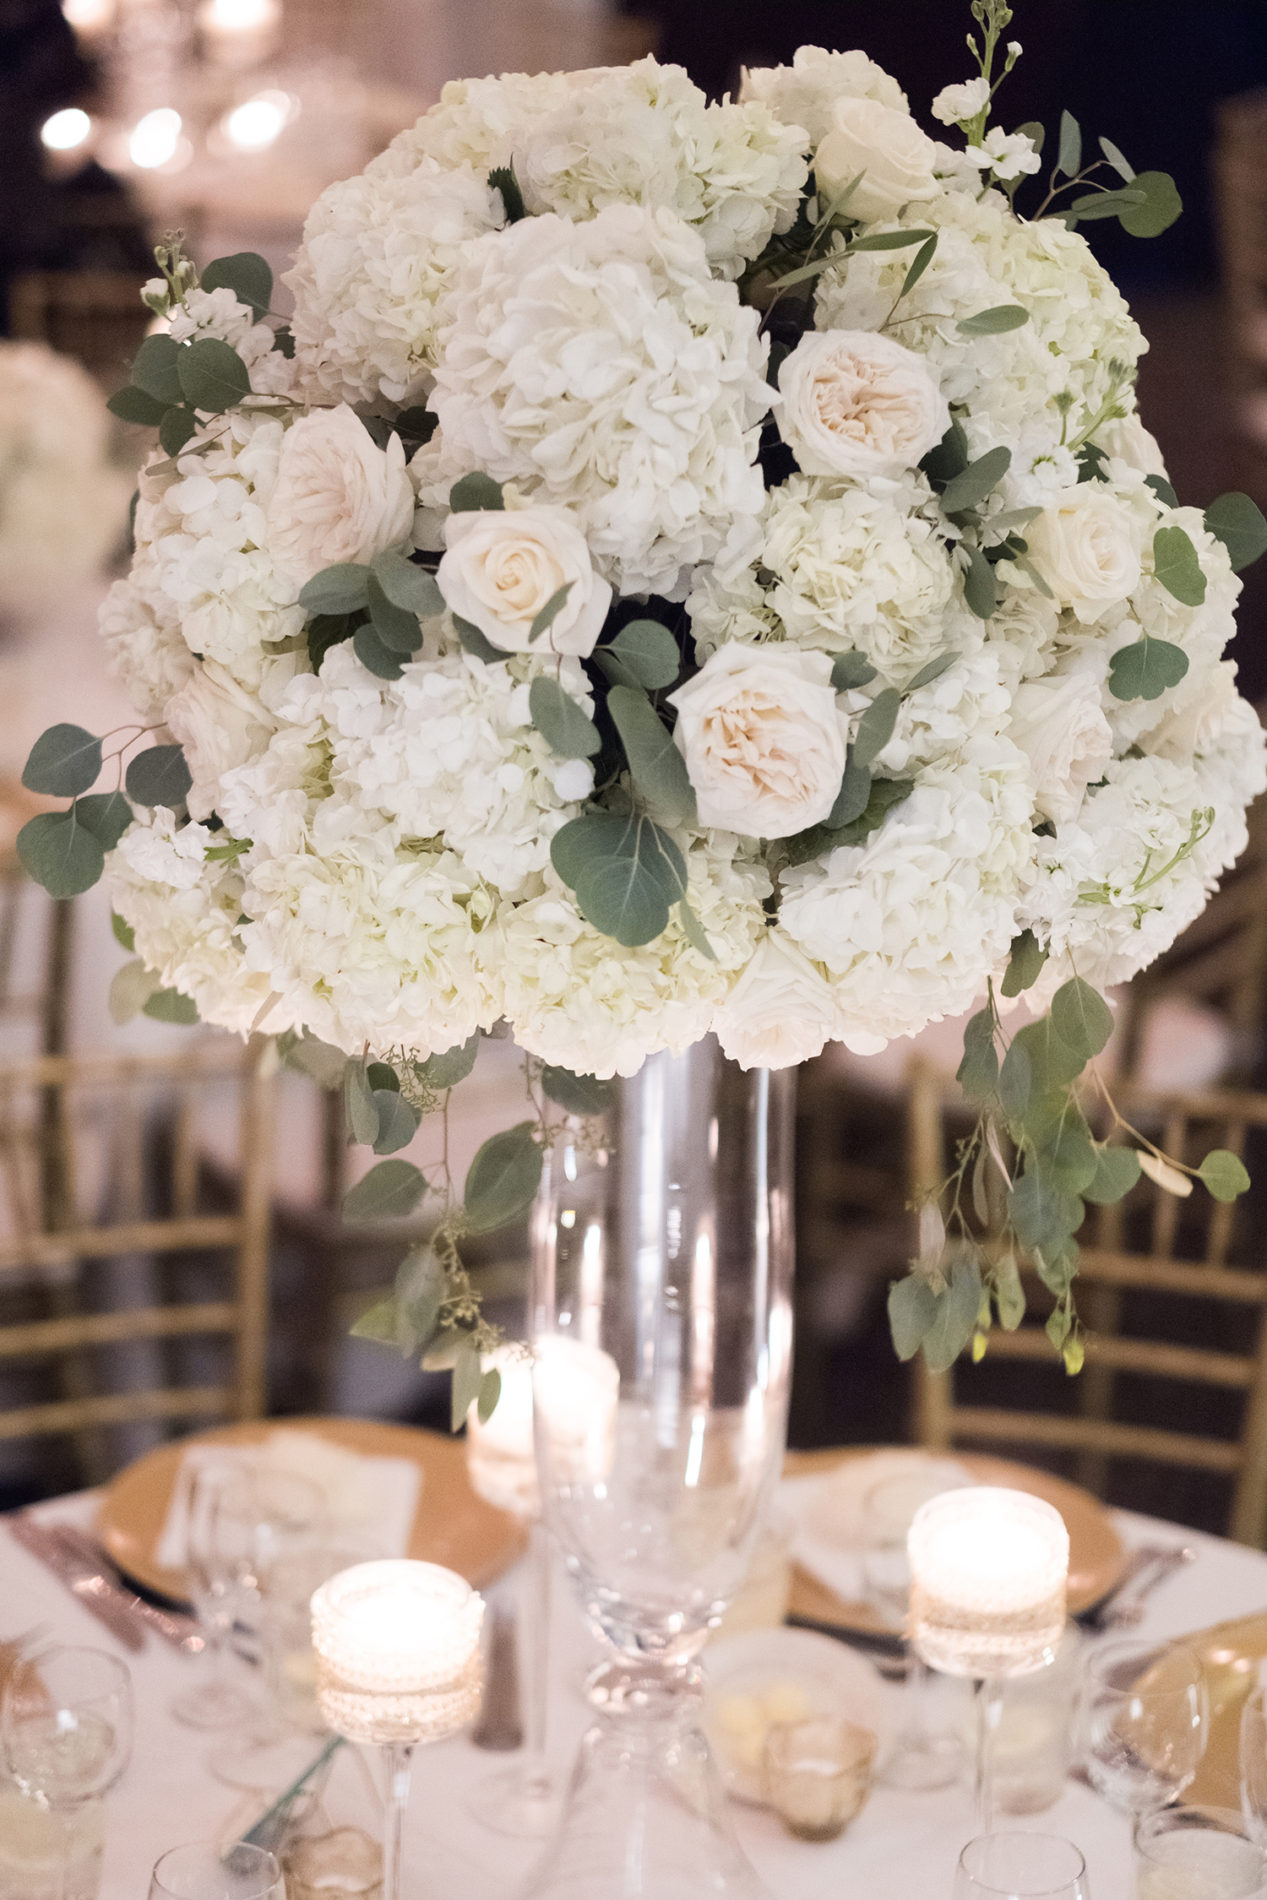 inn-at-longshore-wedding-candis-floral-creations-11